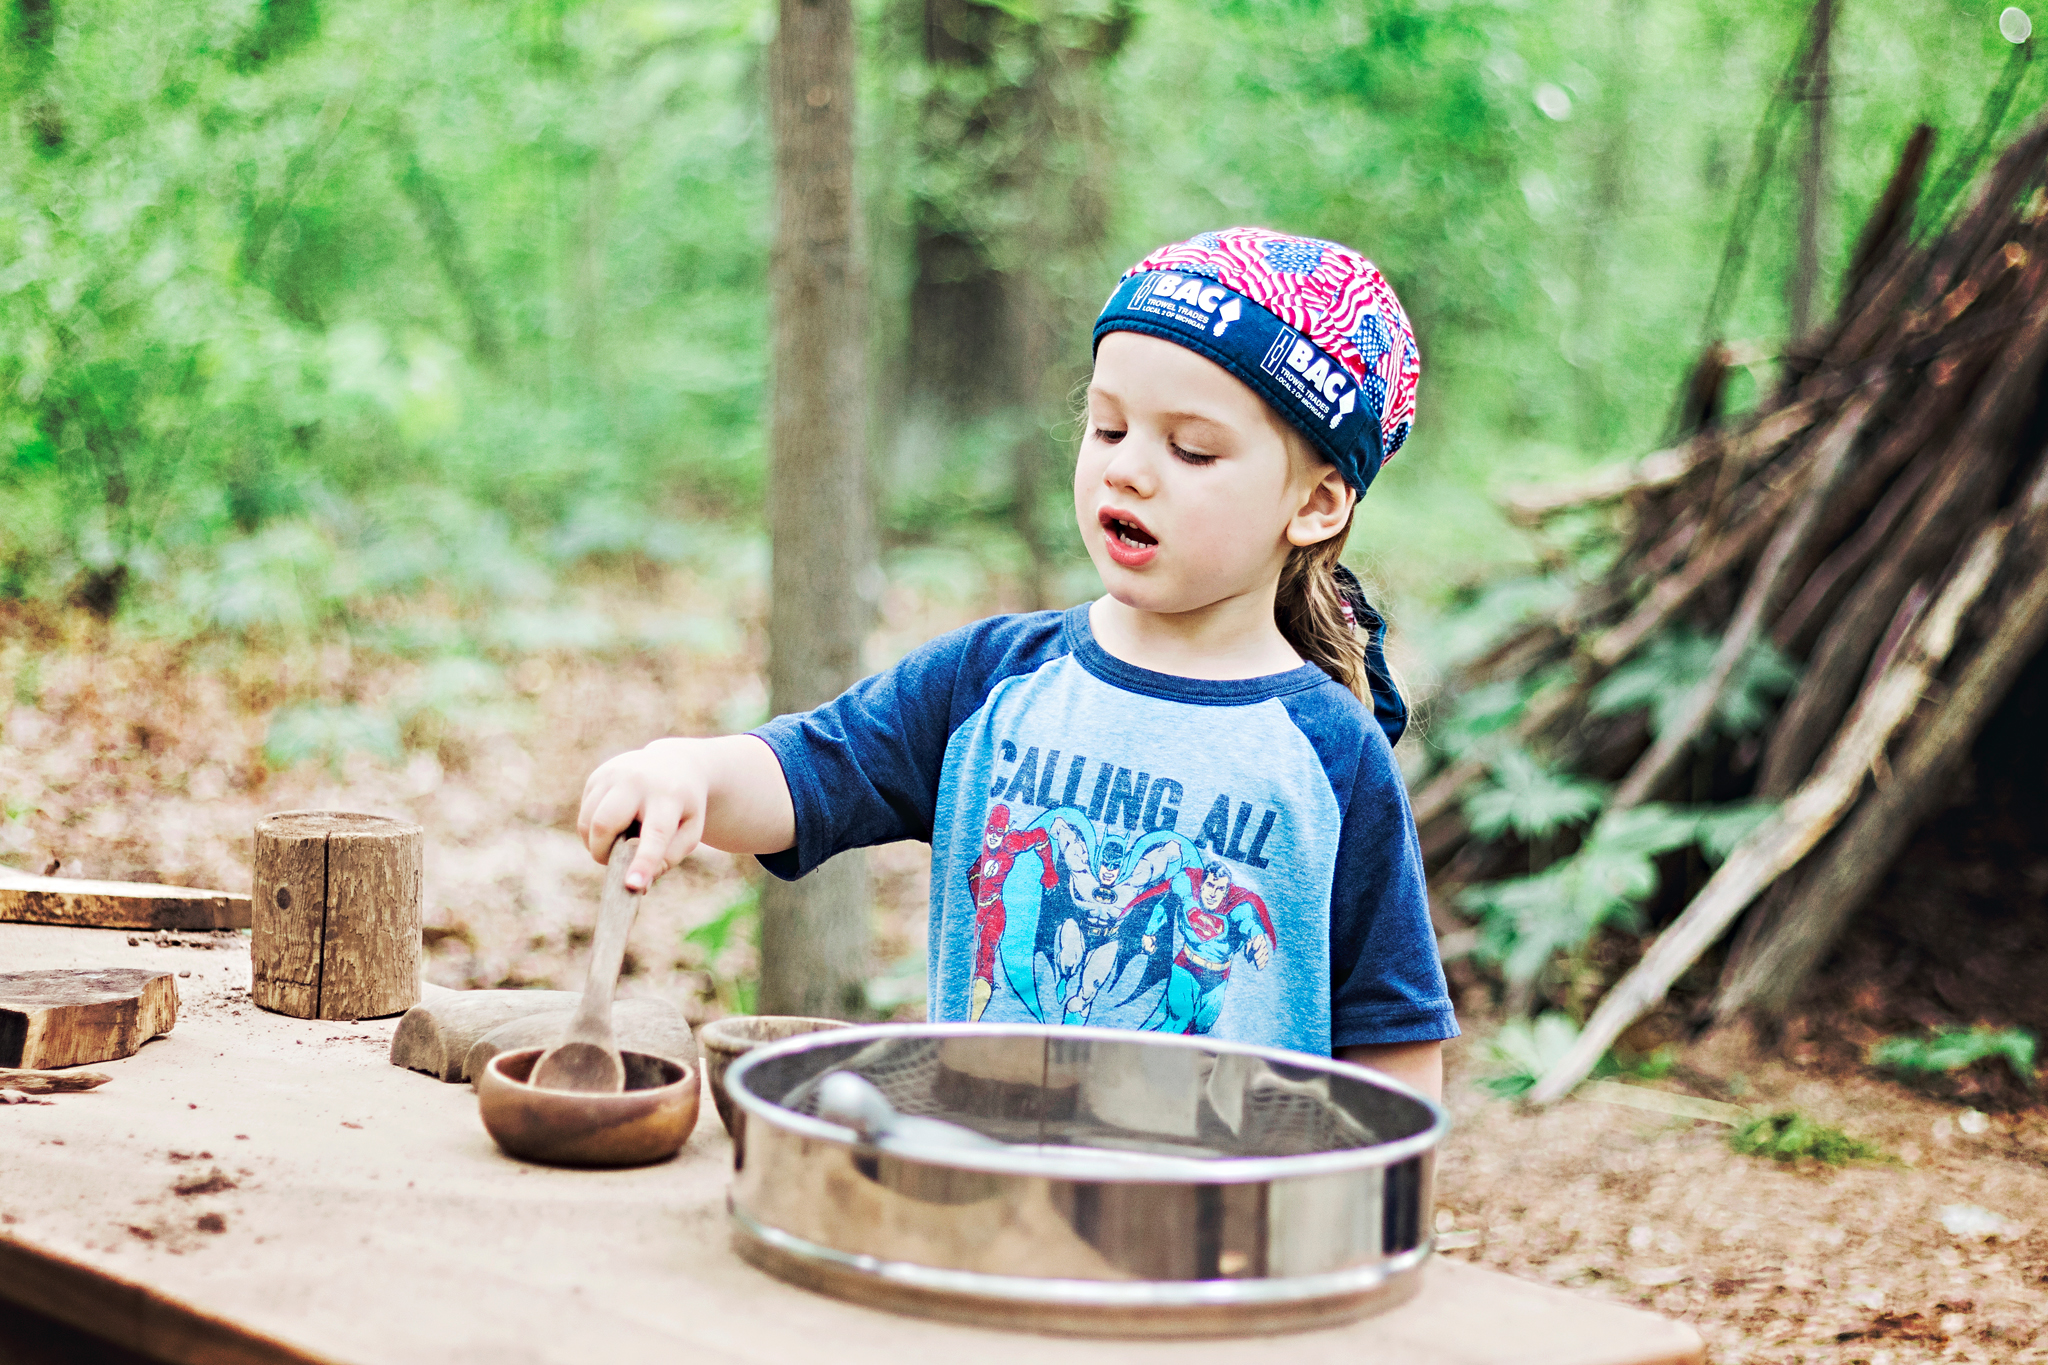 The Eddy Discovery Center's Natural Play Trail is a great place to immerse your kids into nature